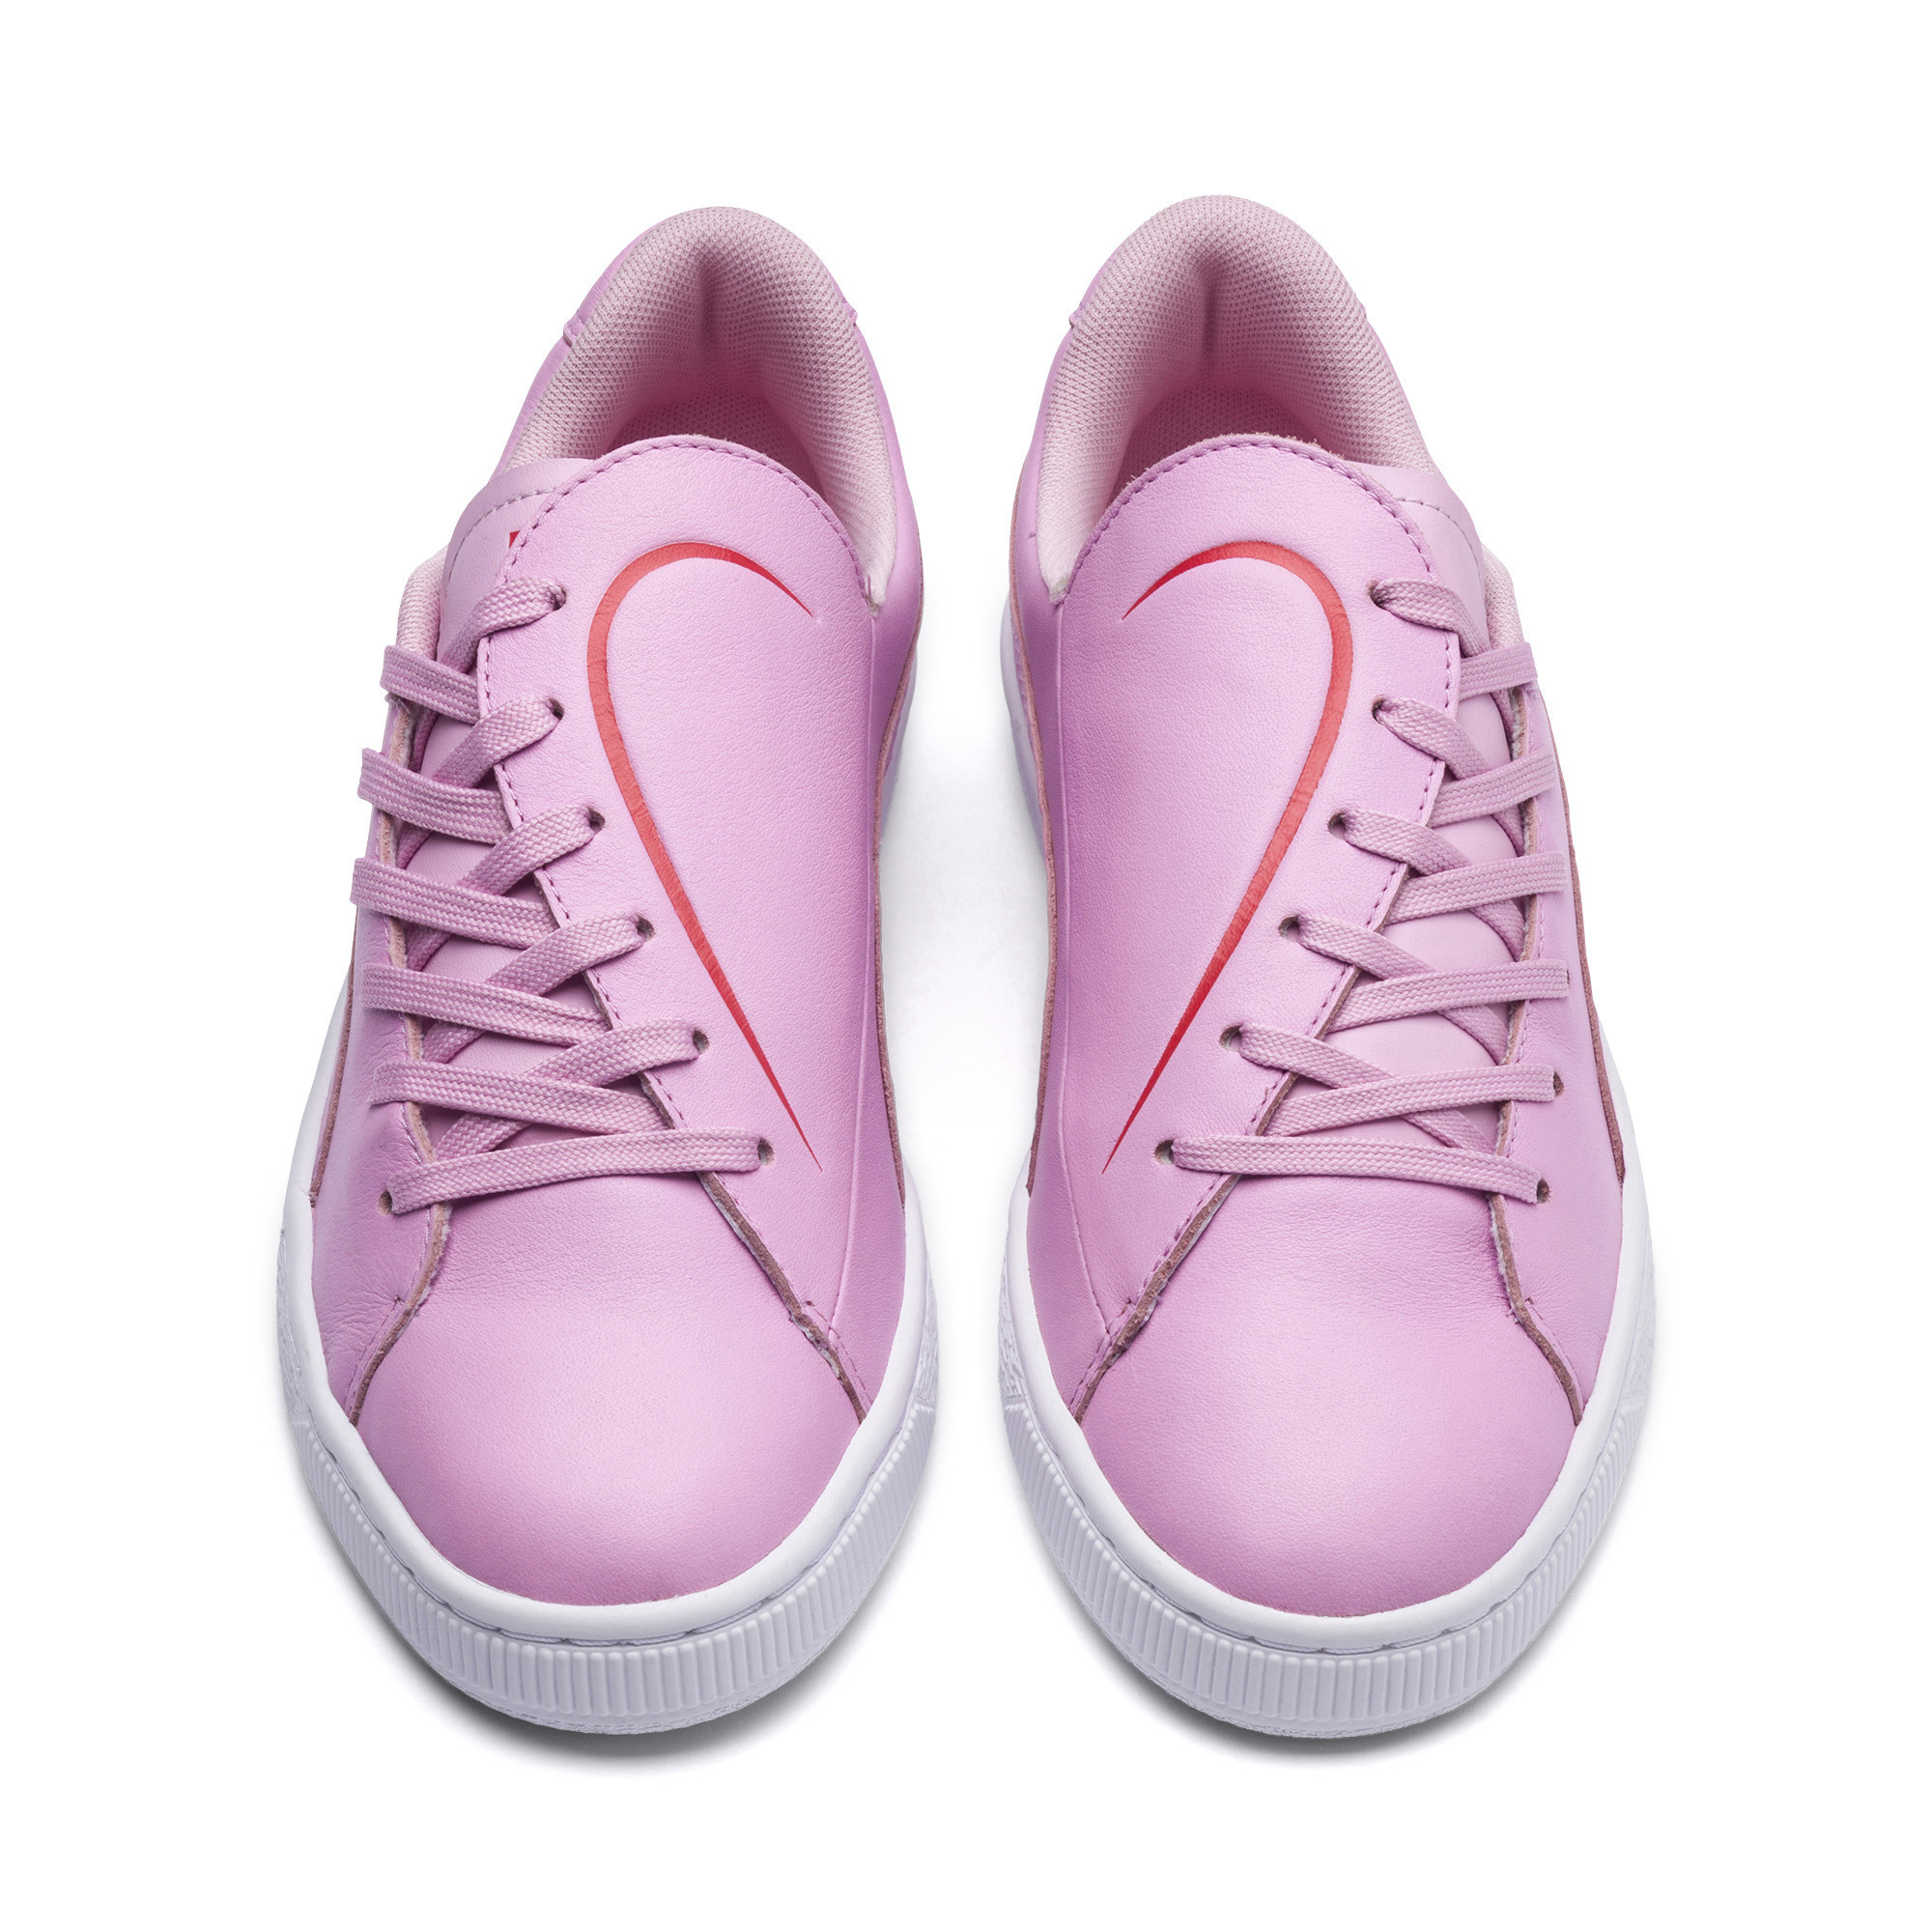 PUMA-Women-039-s-Basket-Crush-Emboss-Heart-Sneakers thumbnail 14